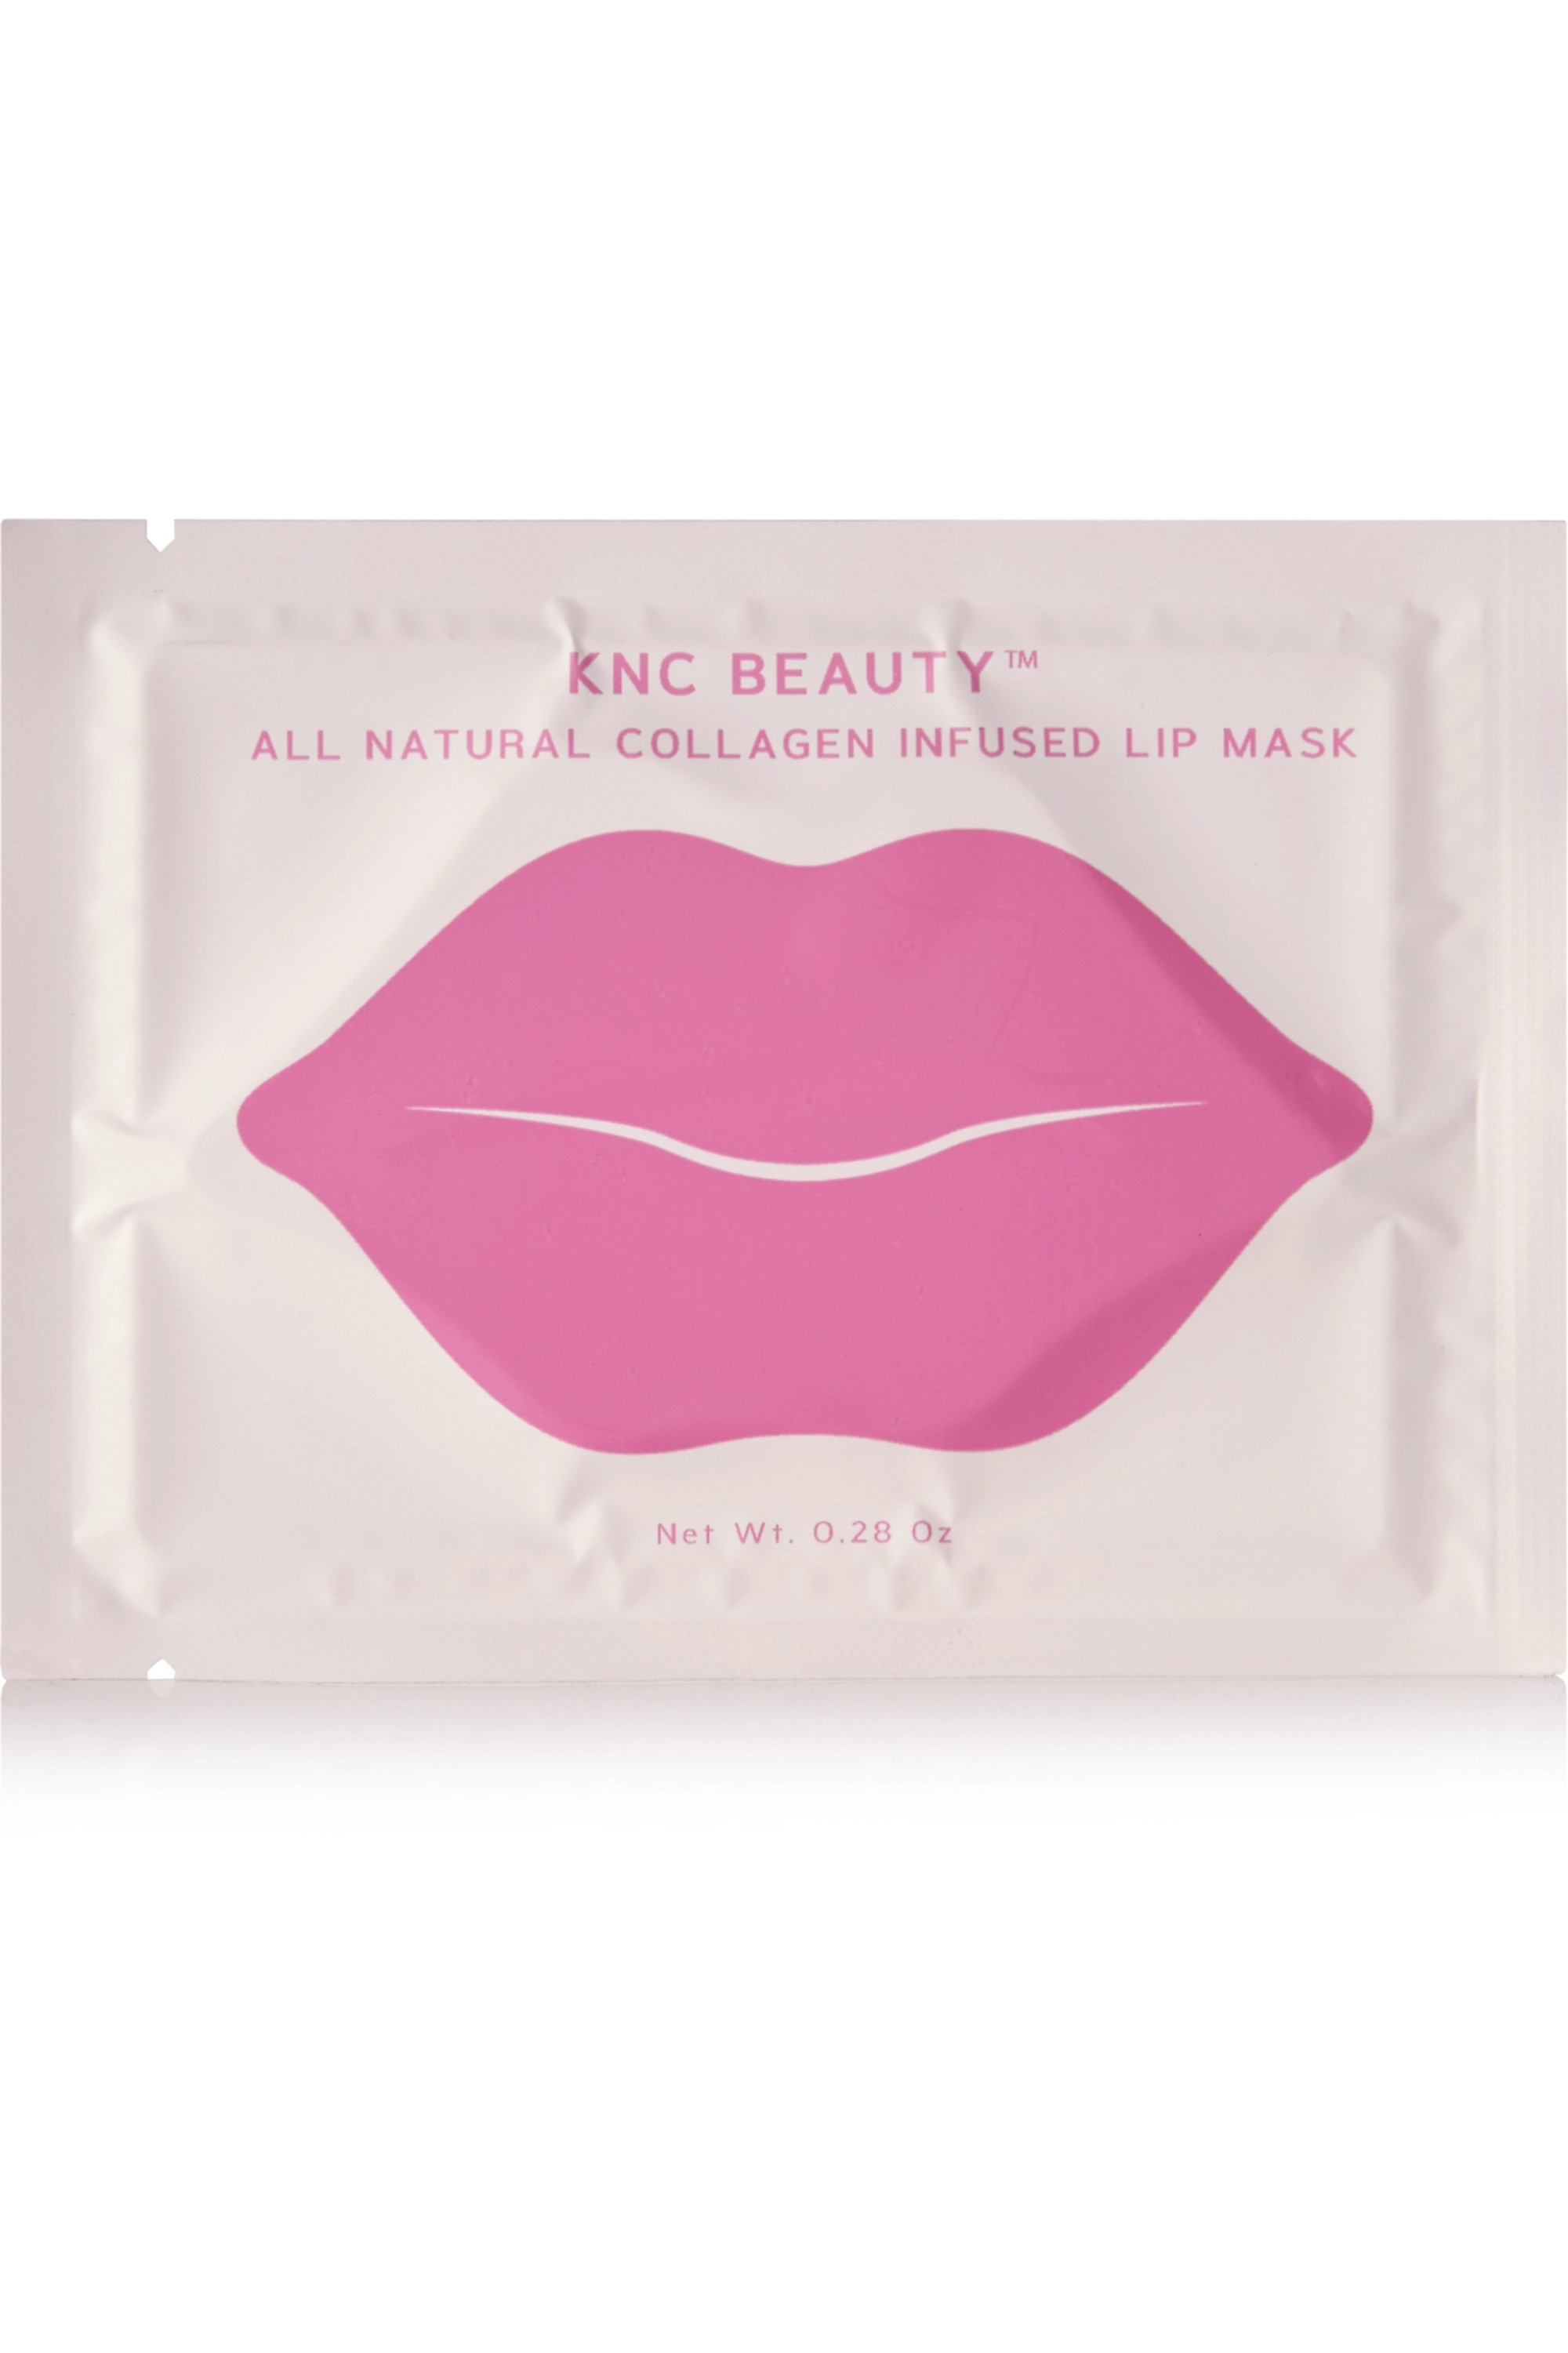 KNC Beauty All Natural Collagen Infused Lip Mask, 10 x 7.9g